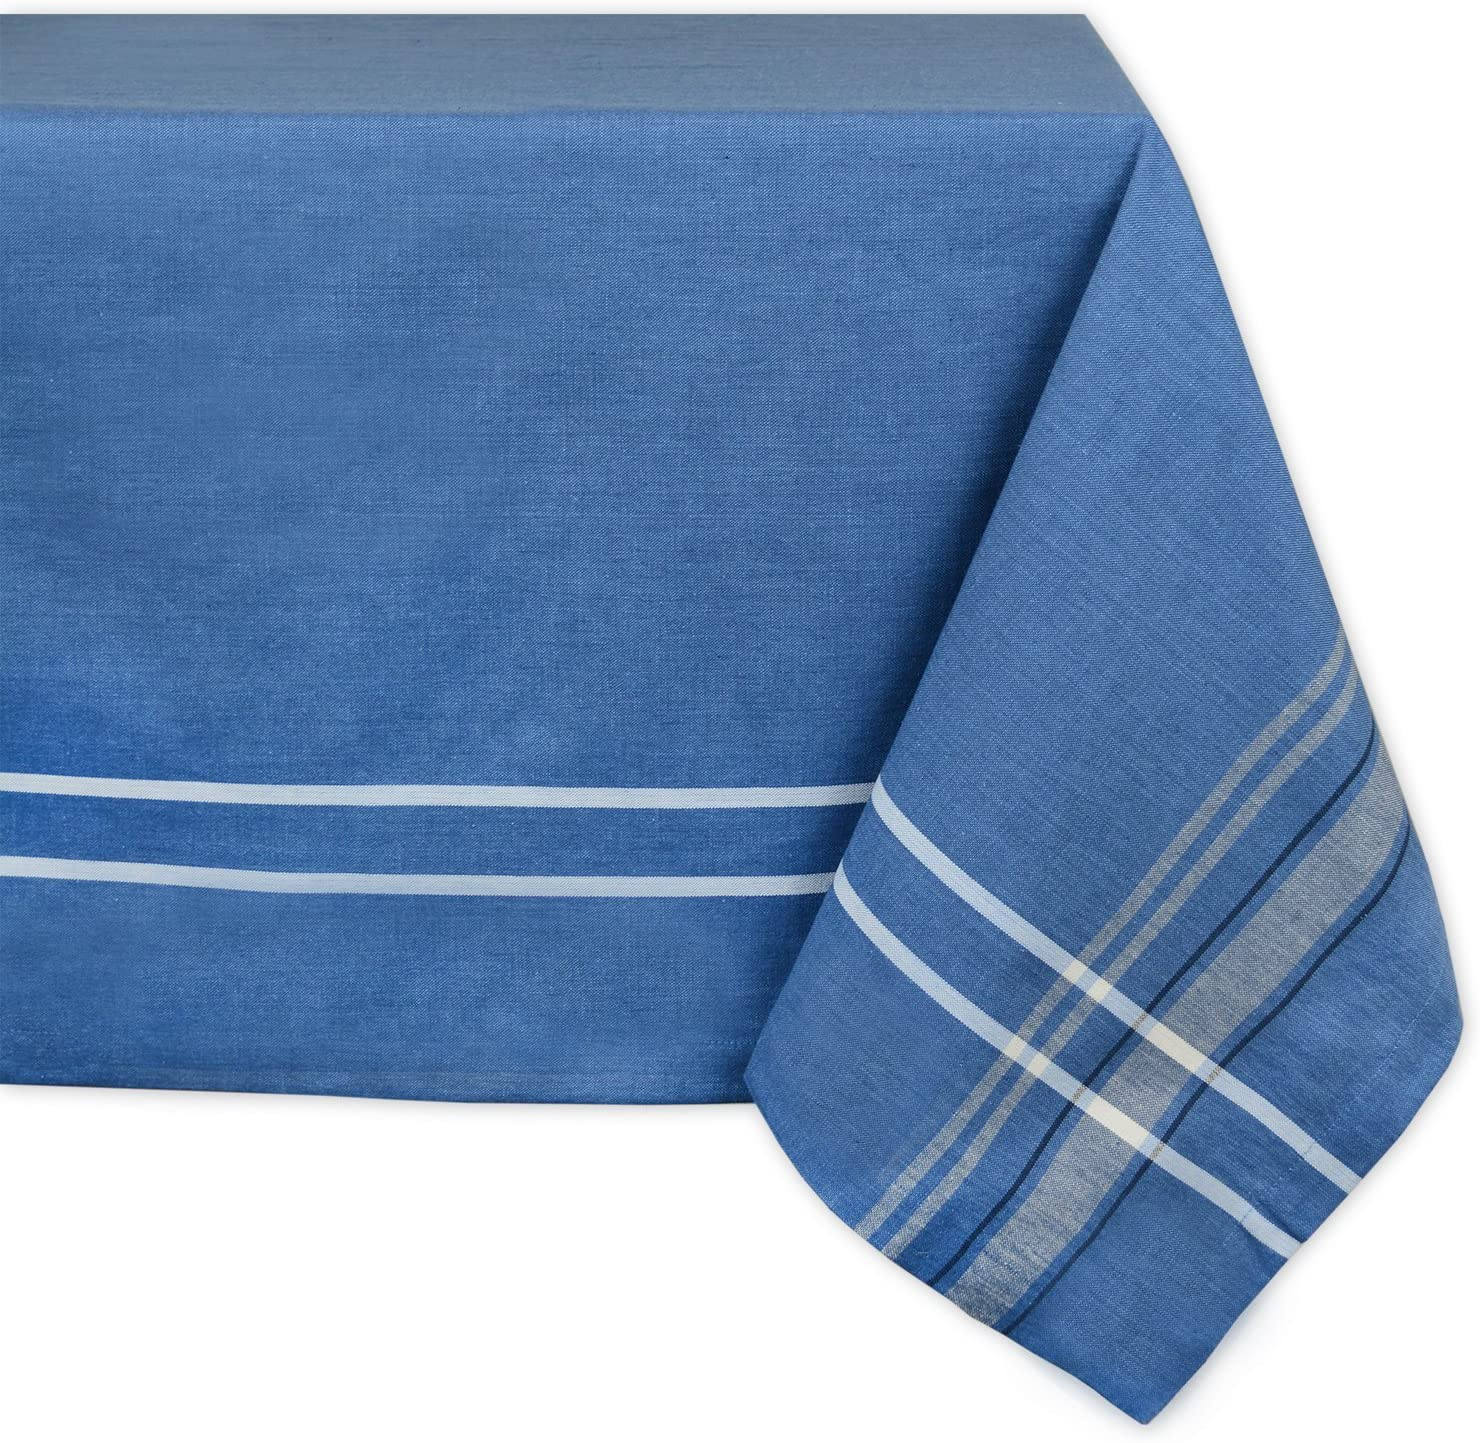 "DII 100% Cotton, Machine Washable, Everyday French Stripe Kitchen Tablecloth For Dinner Parties, Summer & Outdoor Picnics - 60x120"" Seats 10 to 12 People, Blue Chambray"